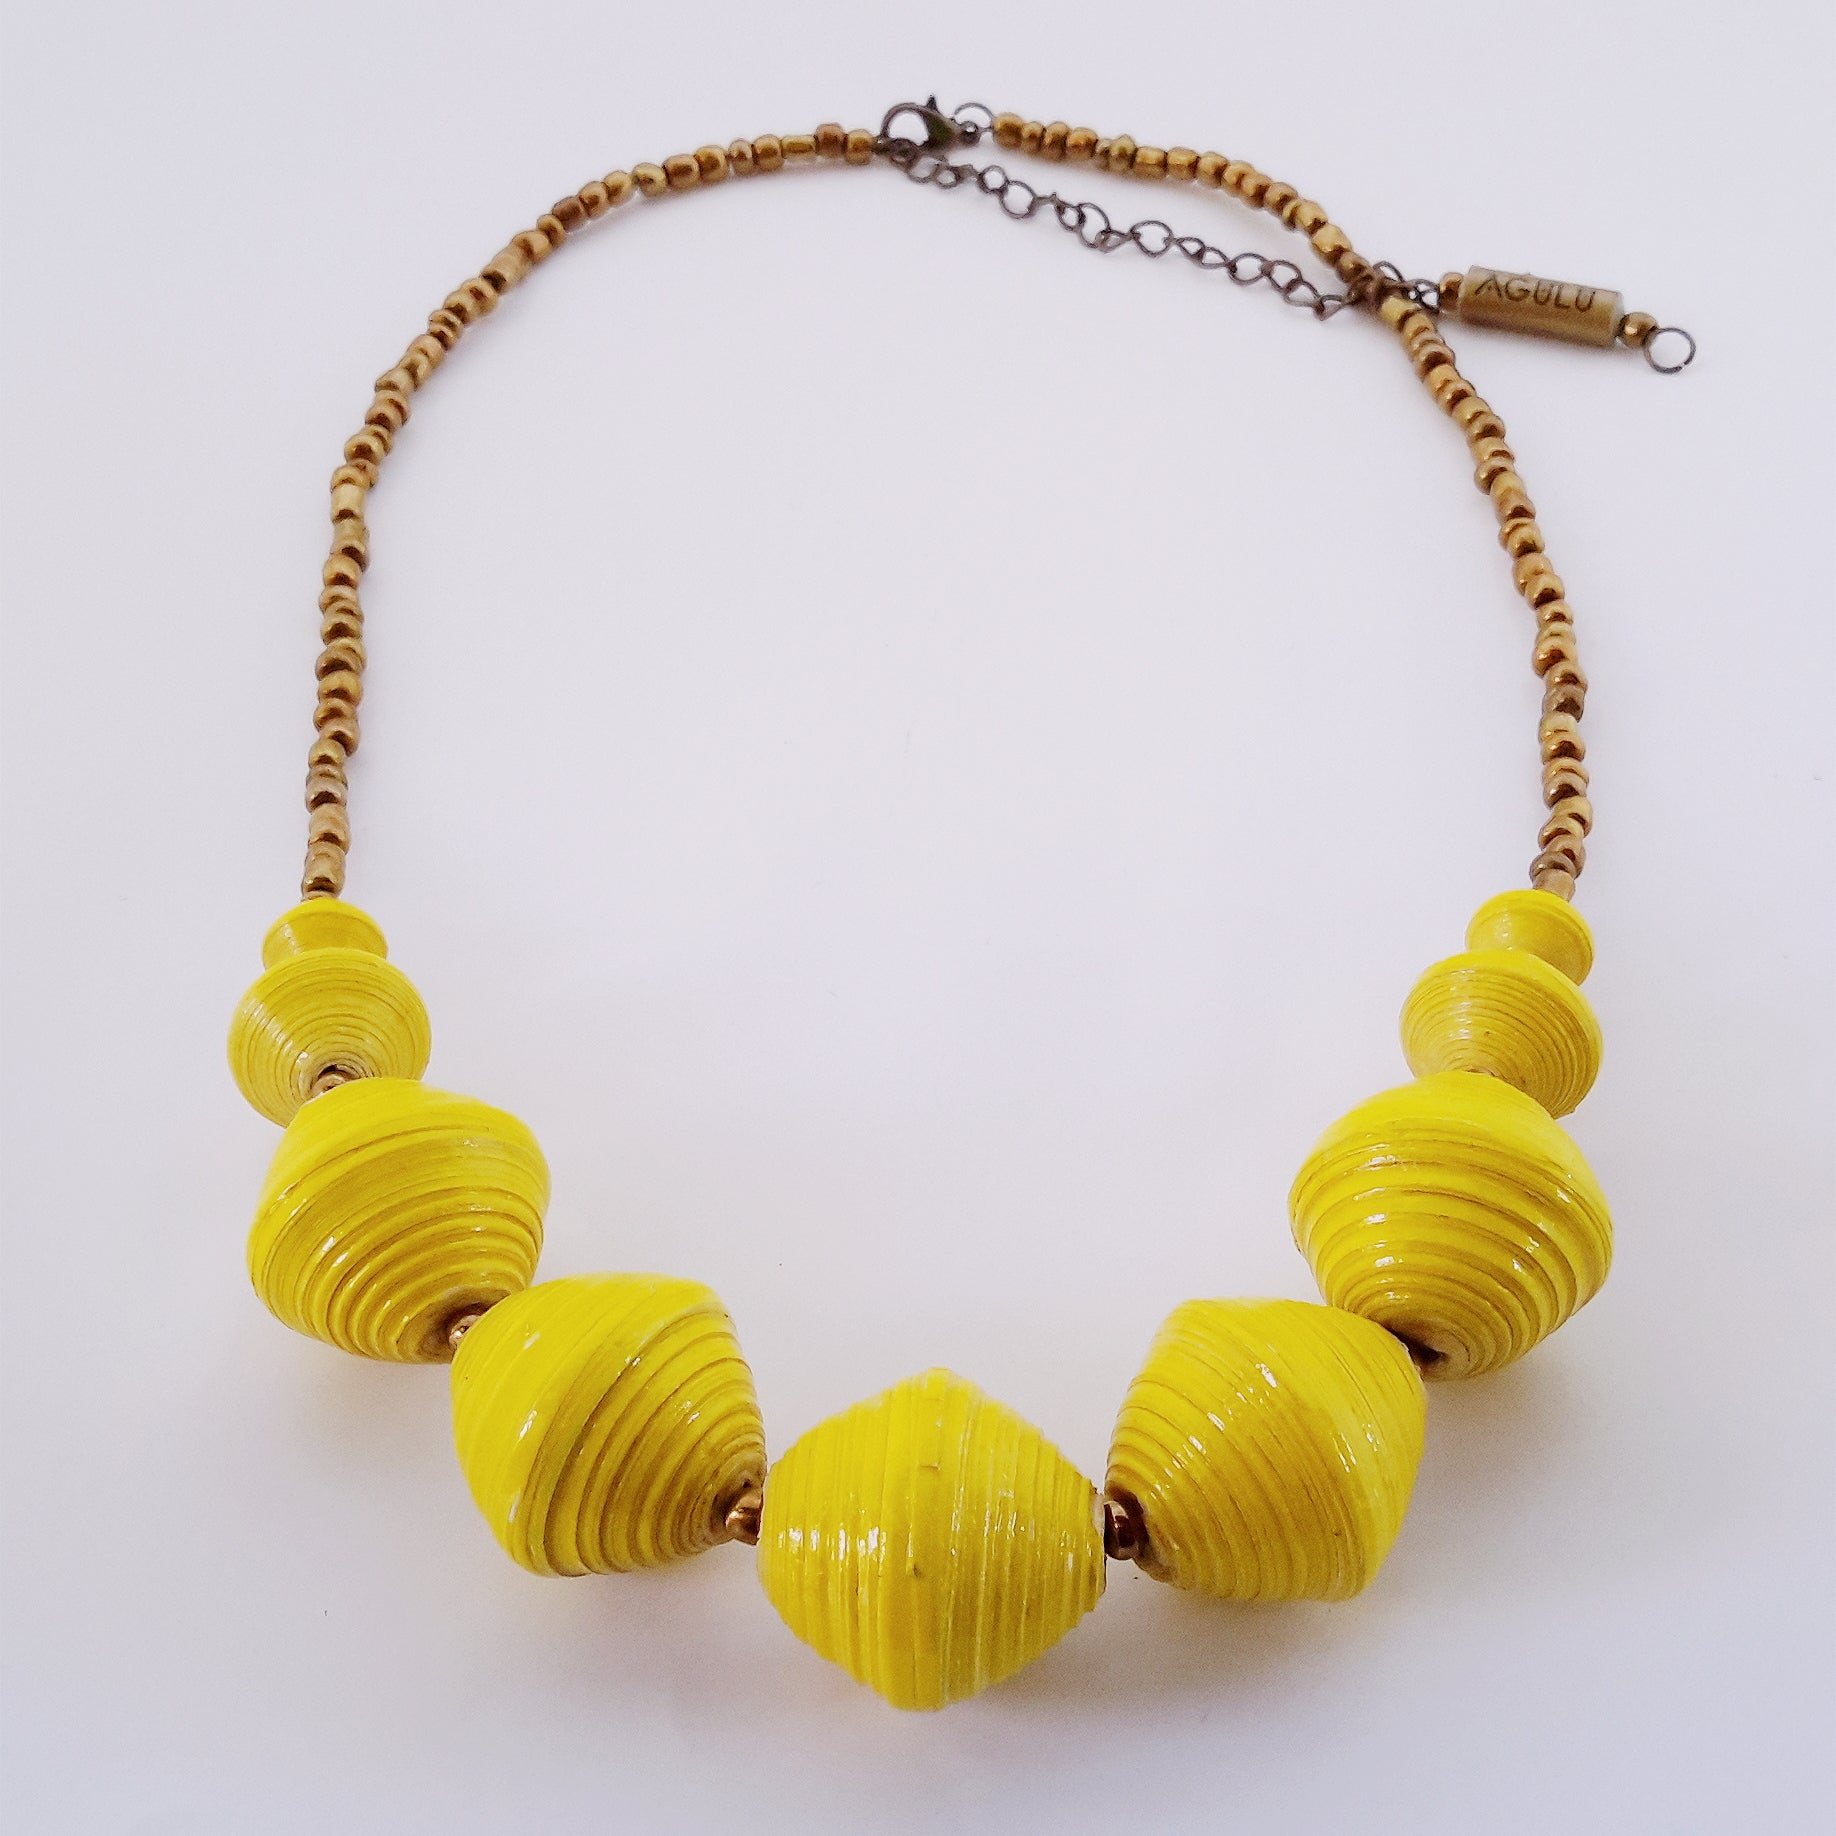 Yellow hand made ethical design paper bead necklace made out of recycled paper in Uganda by principles of fair trade, ethical and sustainable fashion, empowering women of post war area, by Finnish / Scandinavian brand, Agulu Paper Beads. Eettinen keltainen käsintehty design kaulakoru, joka on tehty kierrätyspaperista reilun kaupan periaattein työllistämällä kehitysmaan nasia.